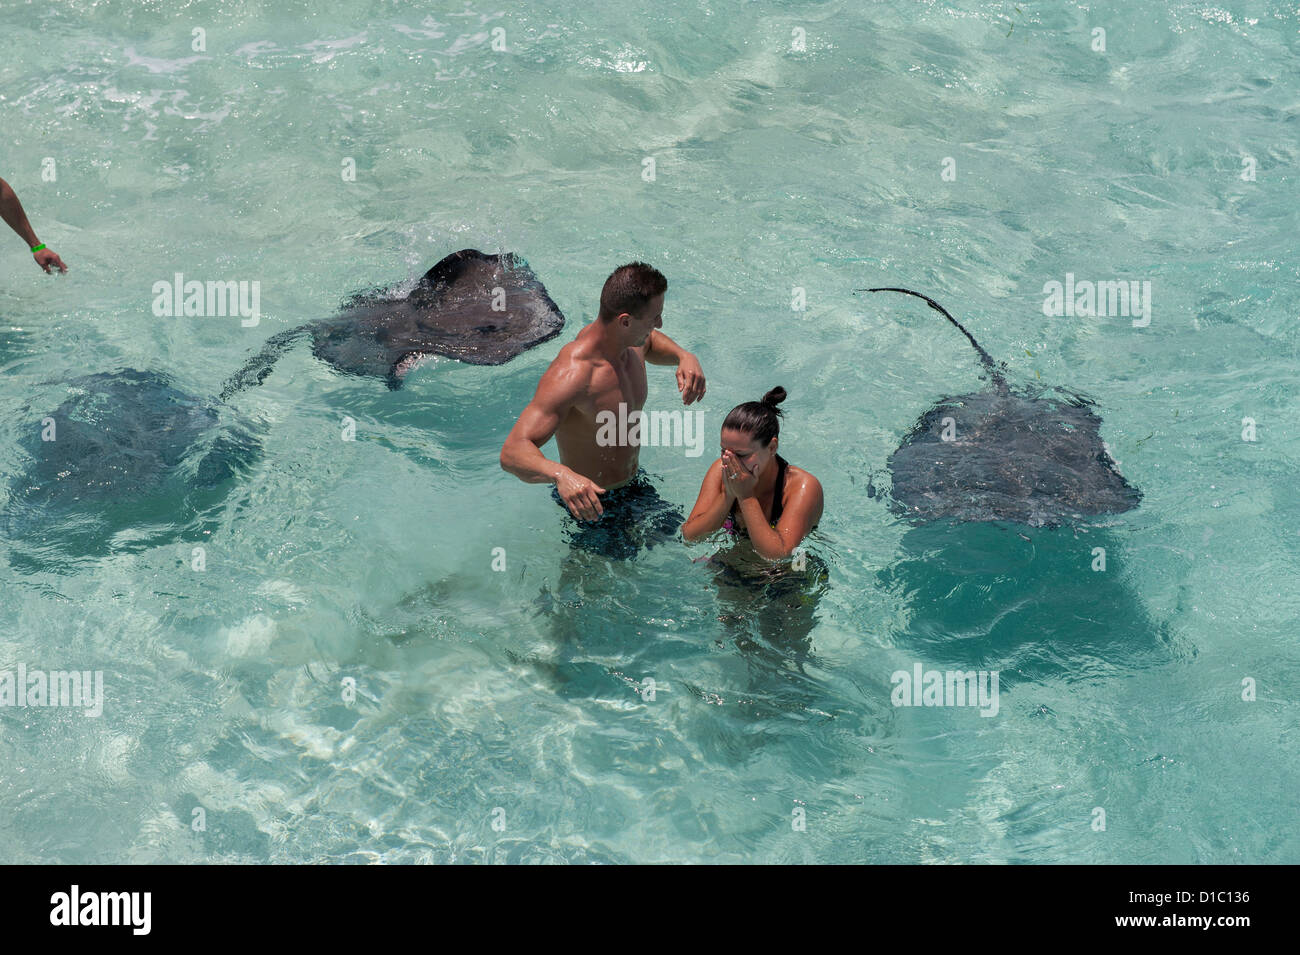 British West Indies, Cayman Islands, Grand Cayman, Stingray City, couple with stingray. (MR) - Stock Image